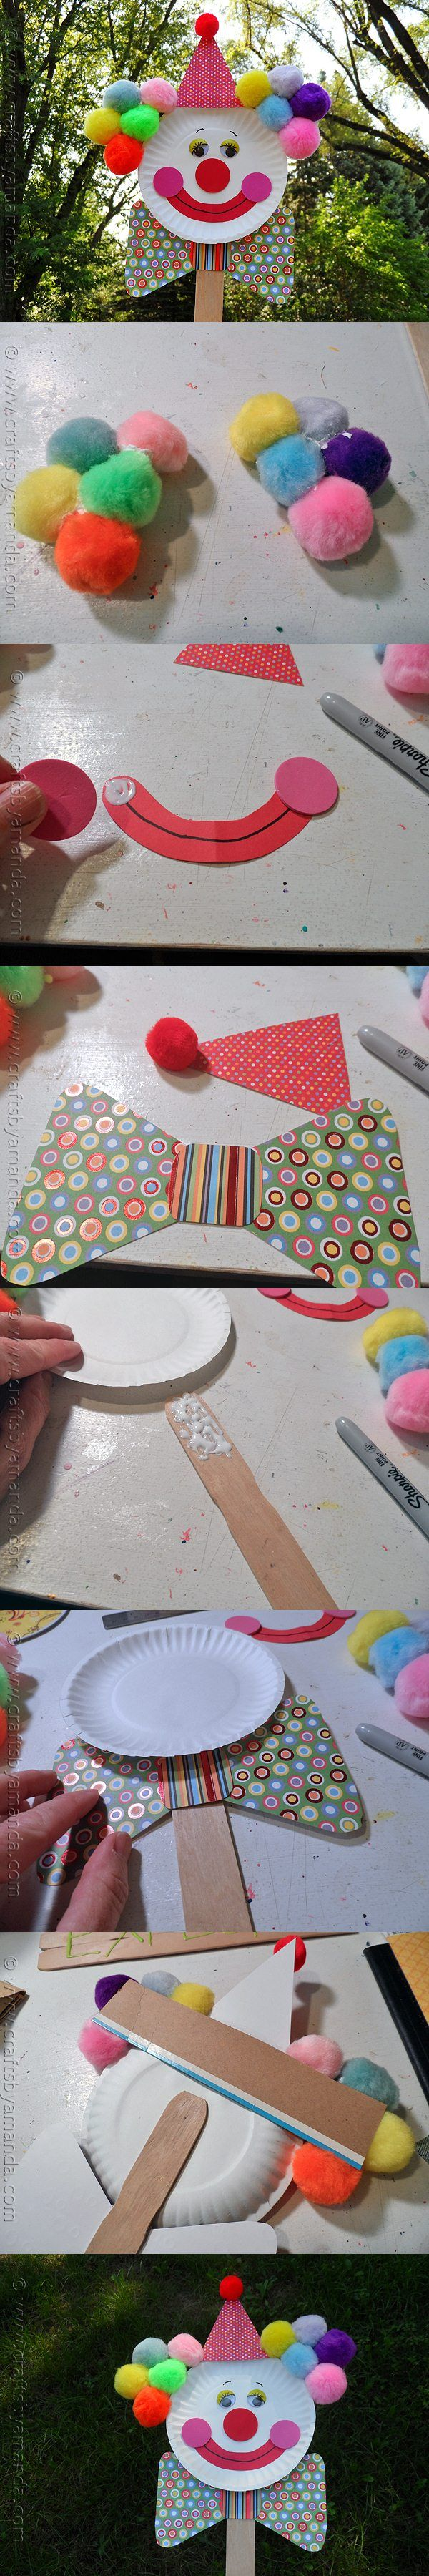 Diy Projects: DIY Paper Plate Clown Puppet for Kids